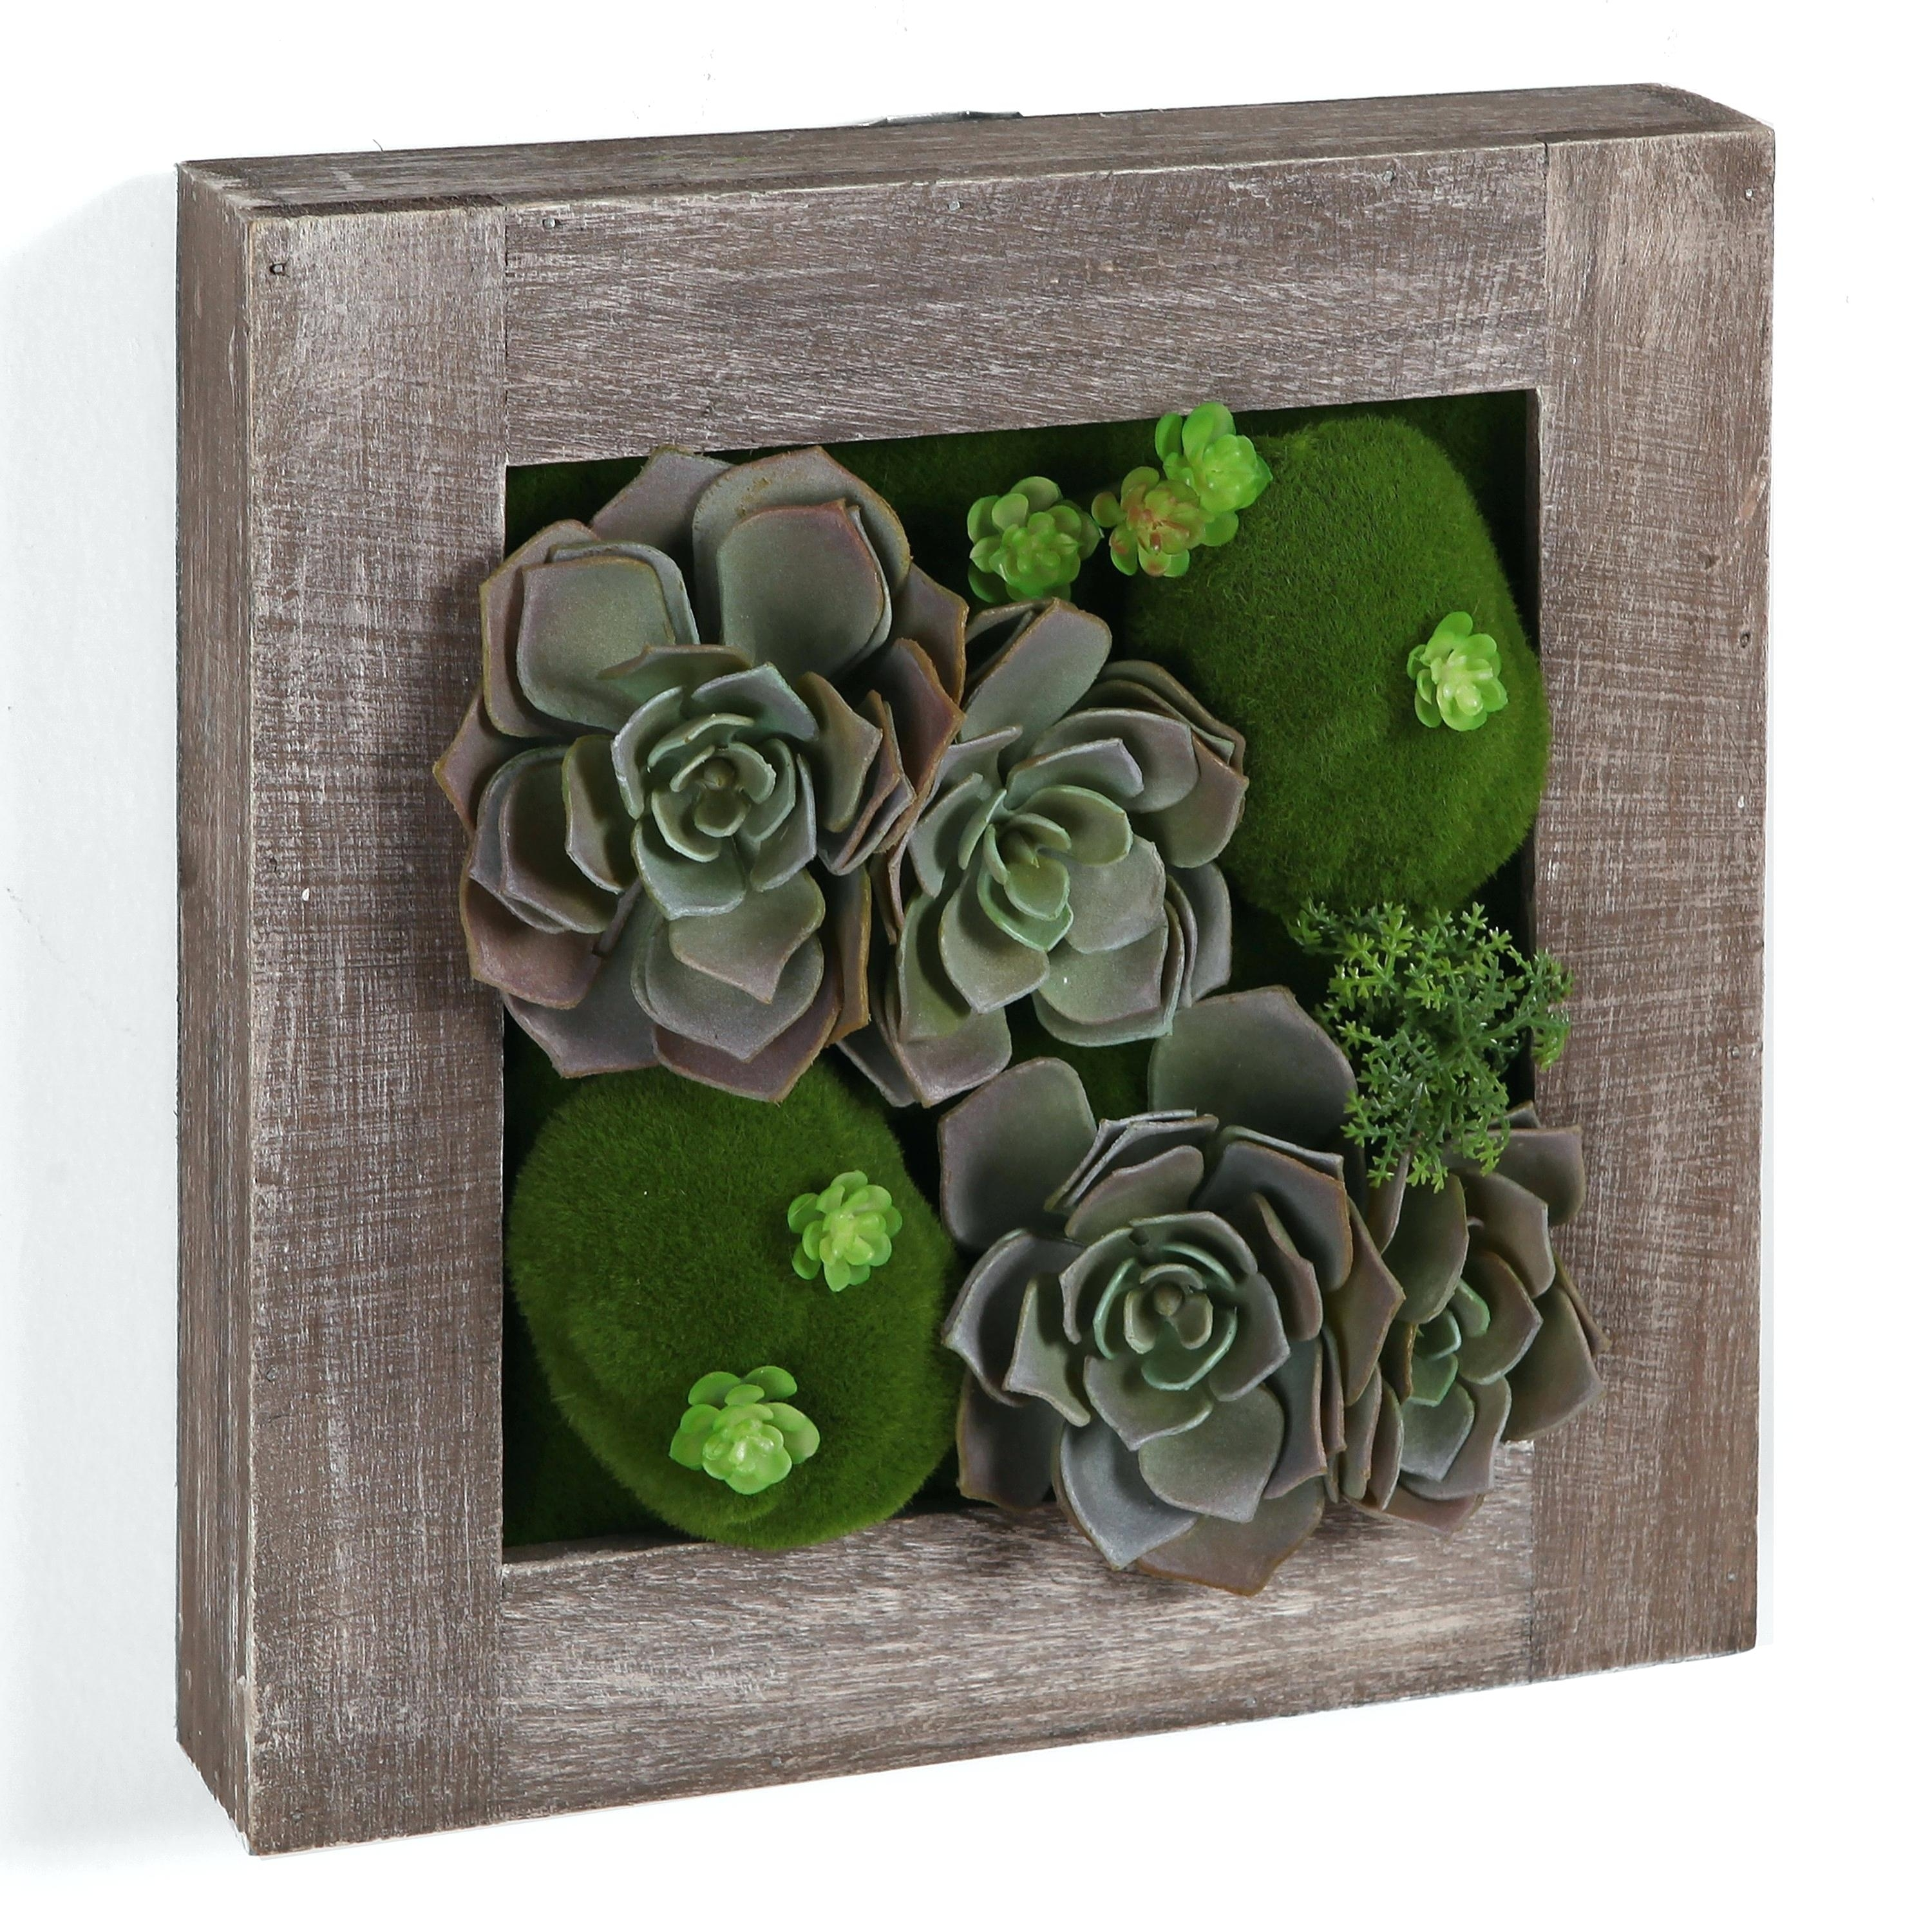 Succulent Wall Art Care Target Wallpaper Desktop – Restorethelakes Within Most Current Succulent Wall Art (View 12 of 20)